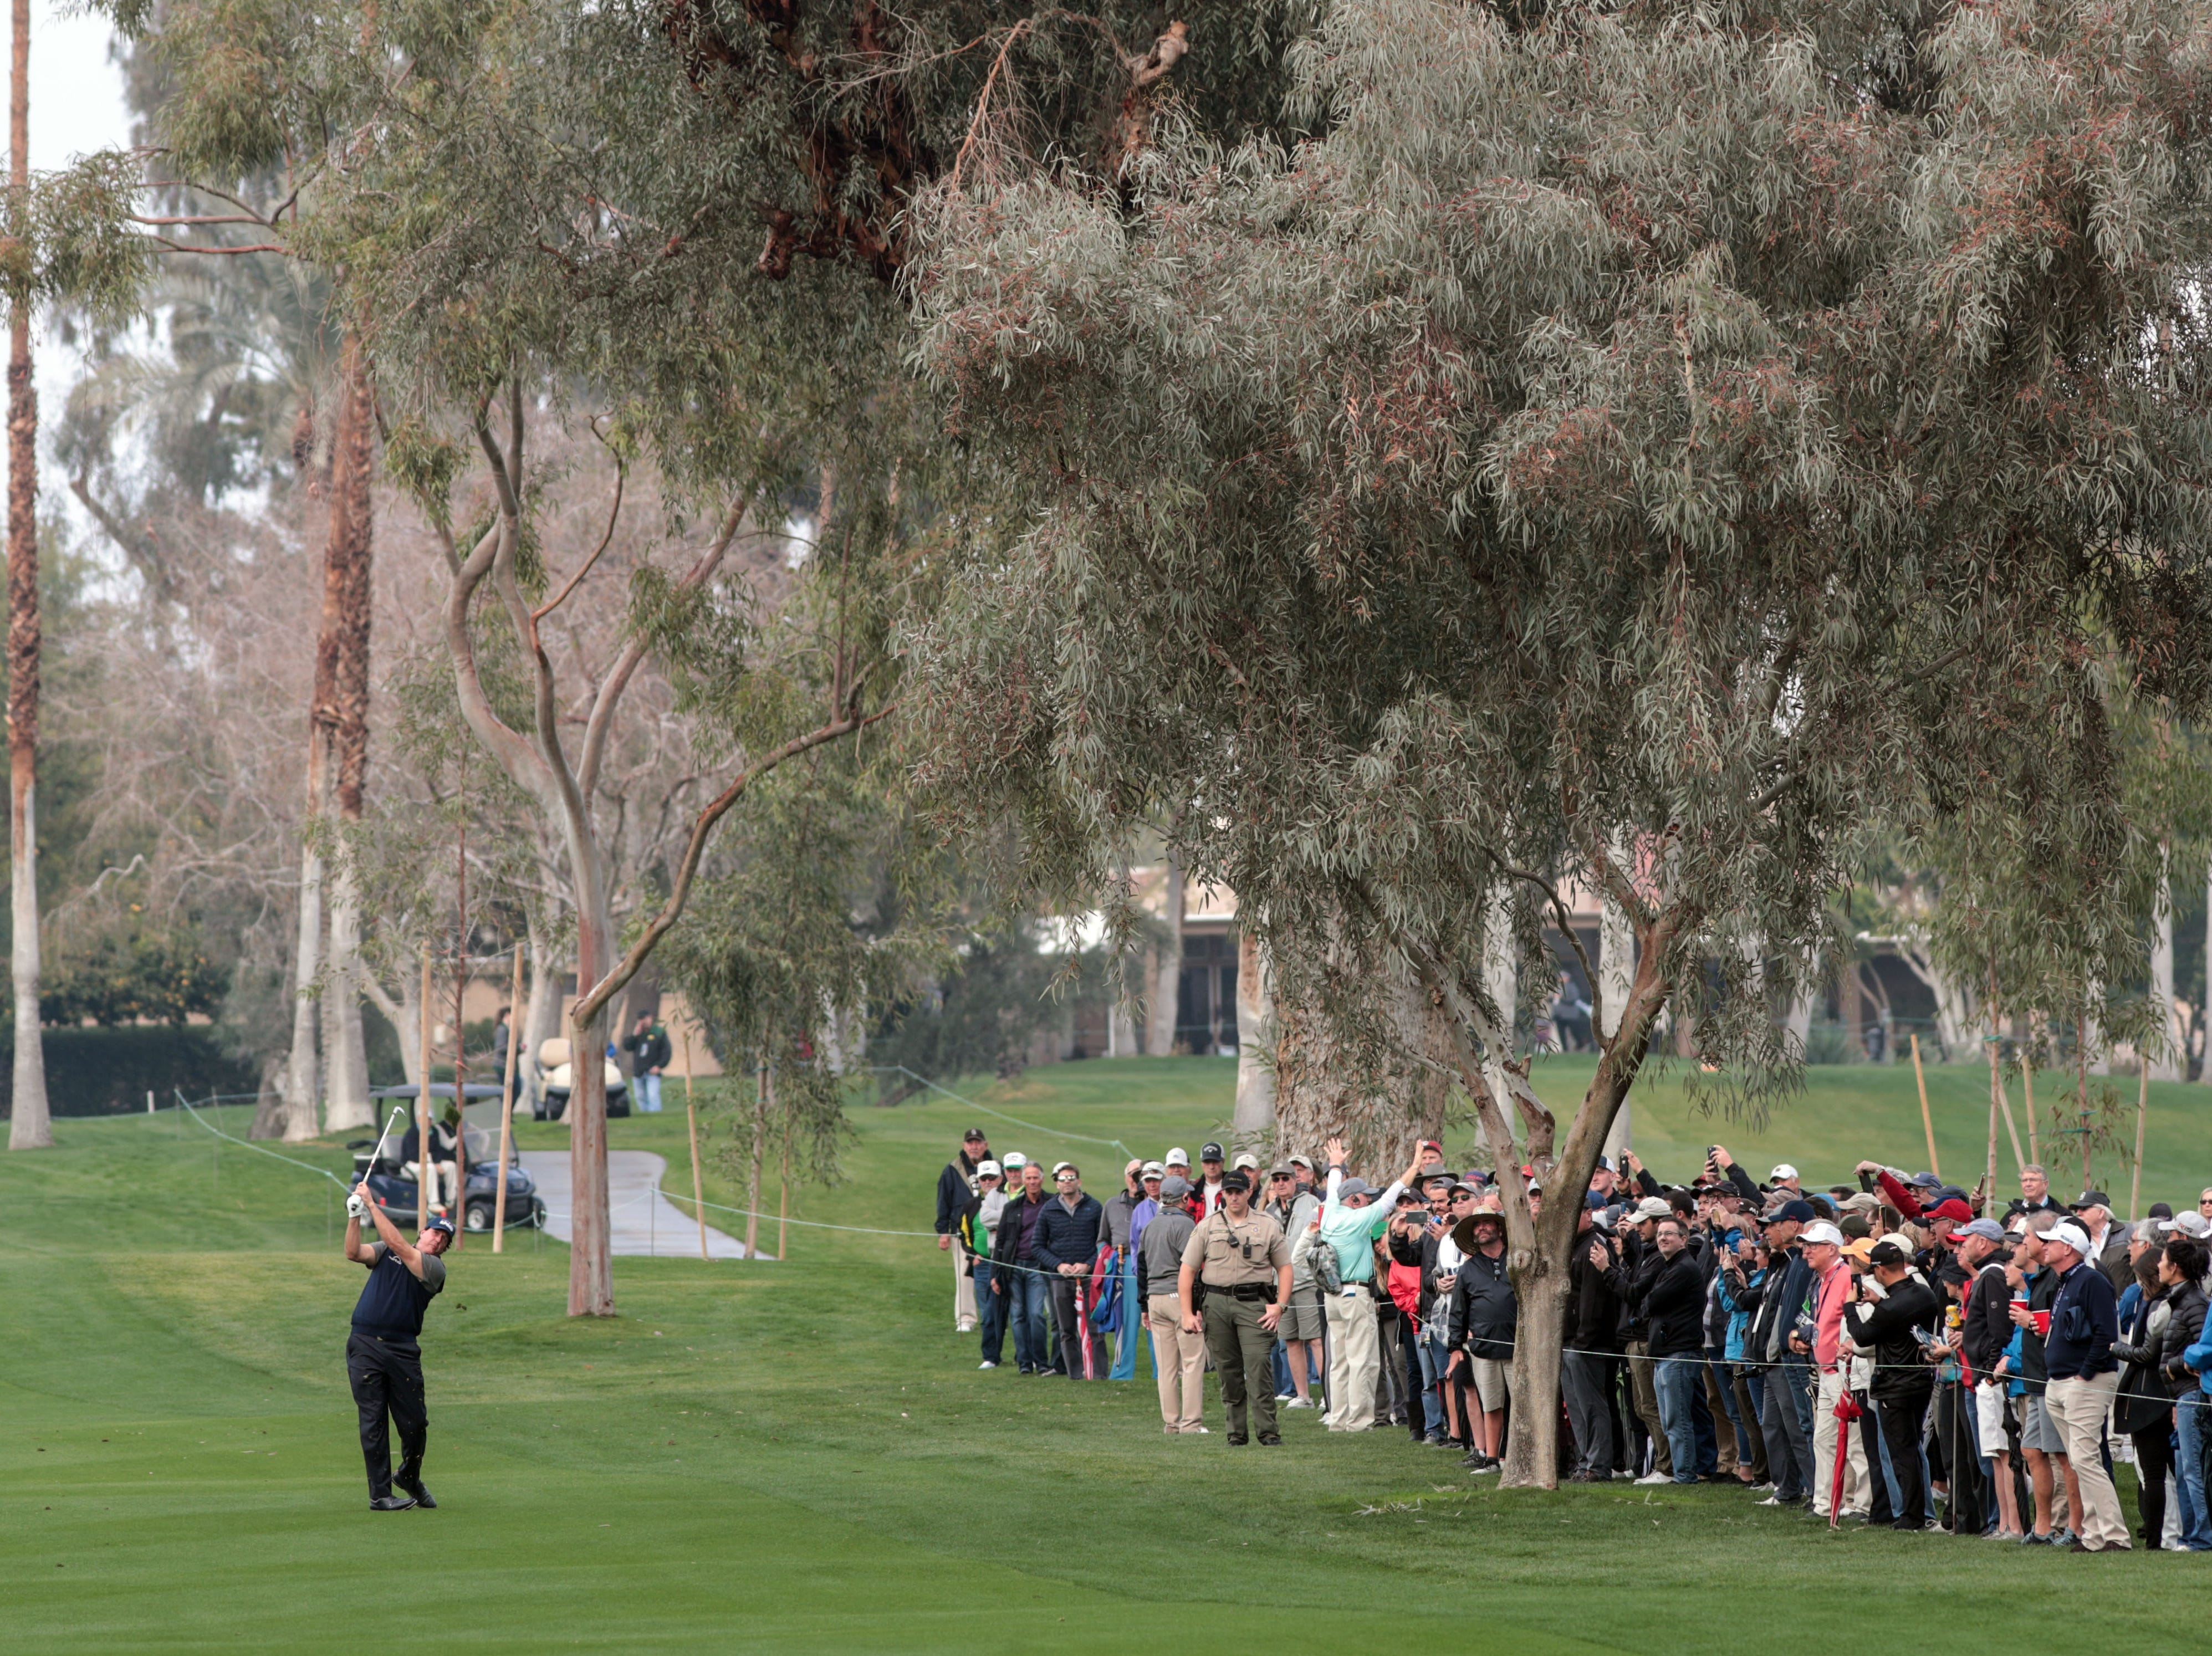 Phil Mickelson hits his approach shot at La Quinta County Club during the 1st round of the Desert Classic on Thursday, January 17, 2019. Mickelson leads at the end of the day with 12 under.